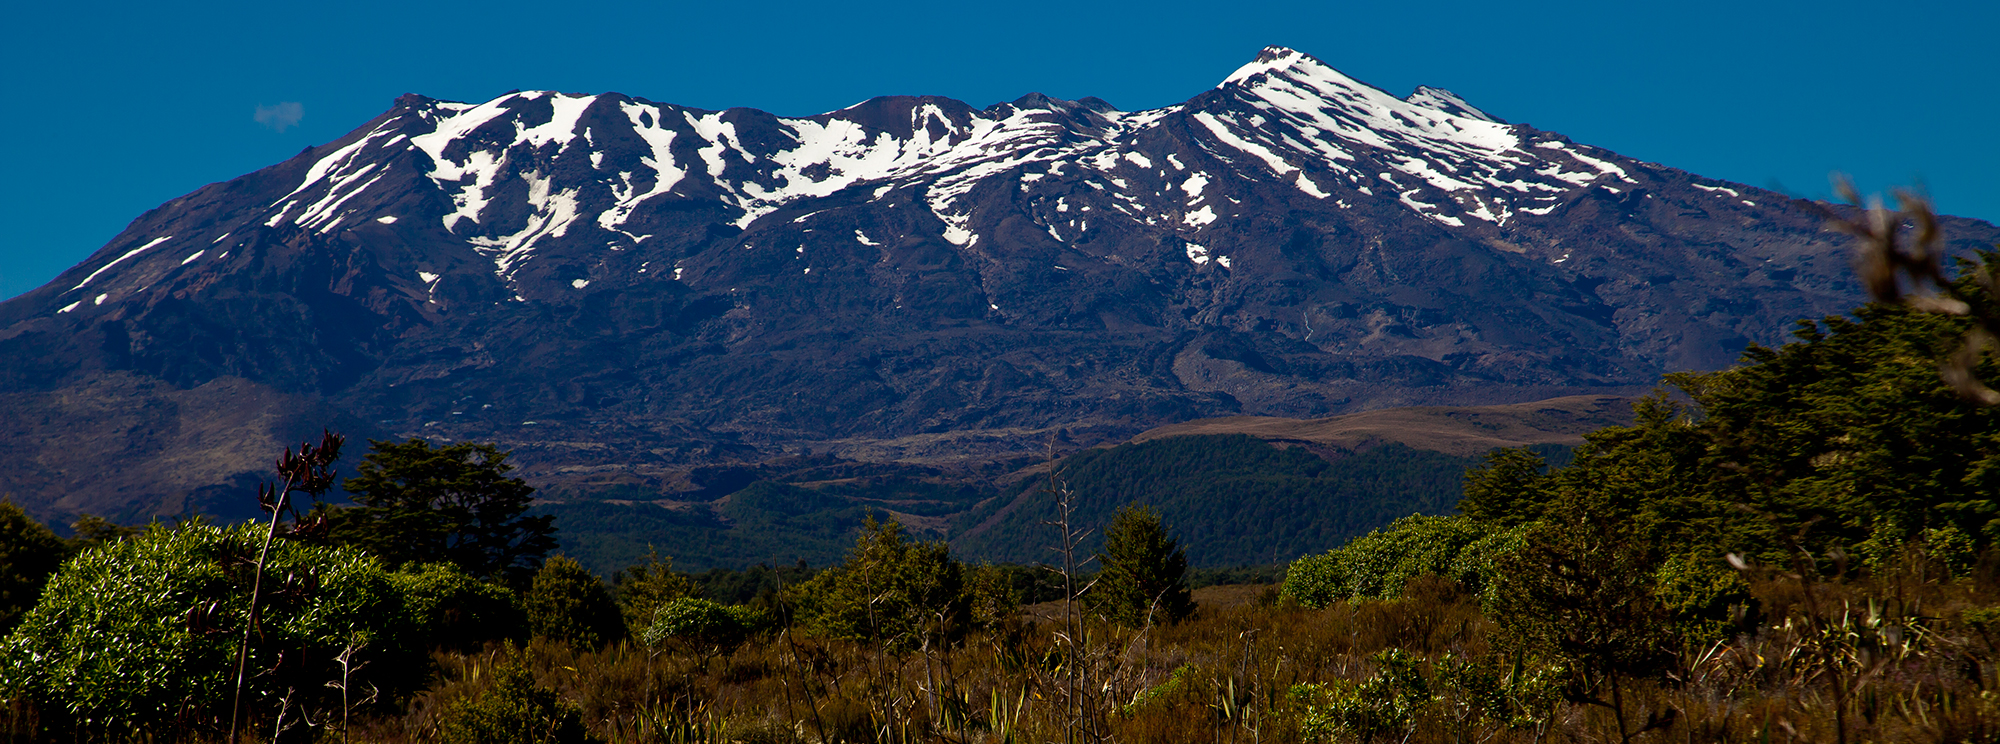 Chateau Tongariro National Park with Mount Ruaperhu